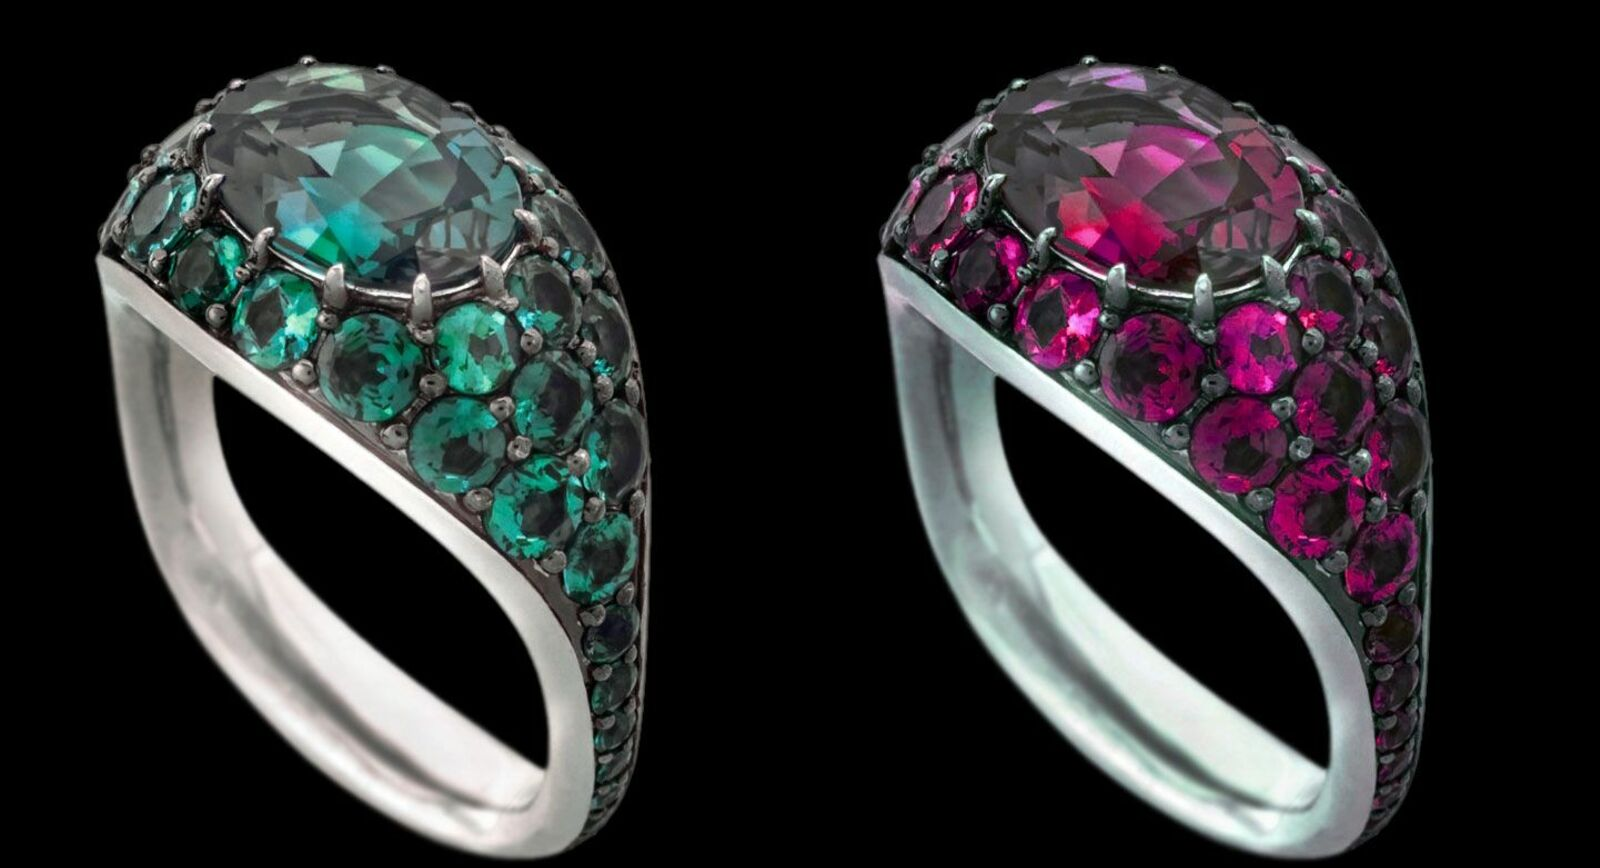 Collectible Gemstones: Alexandrite